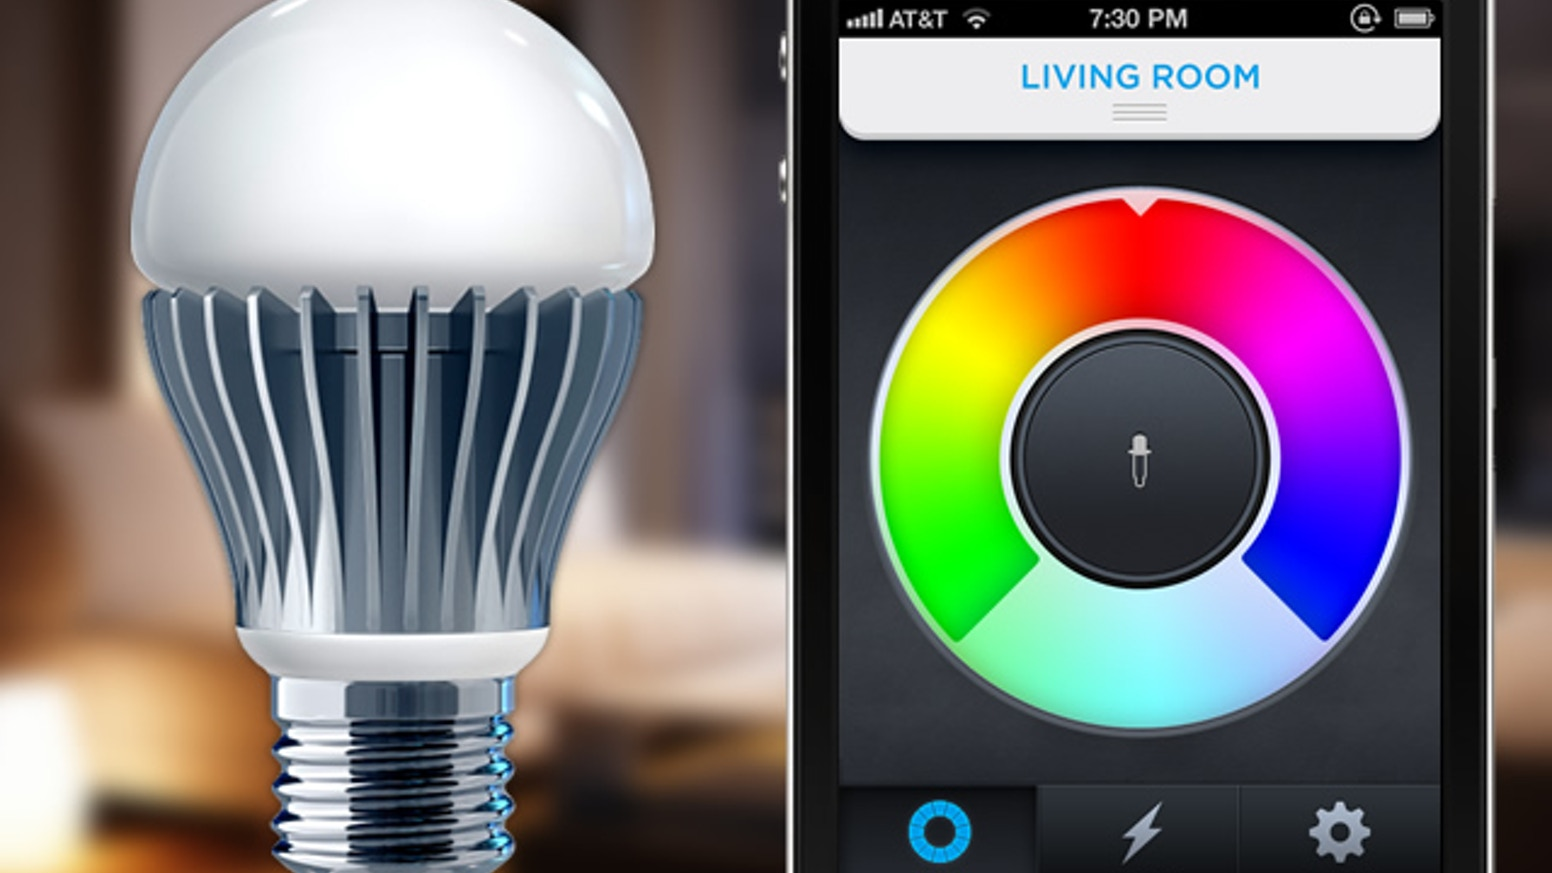 LIFX Is A WiFi Enabled Multi Color Energy Efficient LED Light Bulb That You Control With Your IPhone Or Android